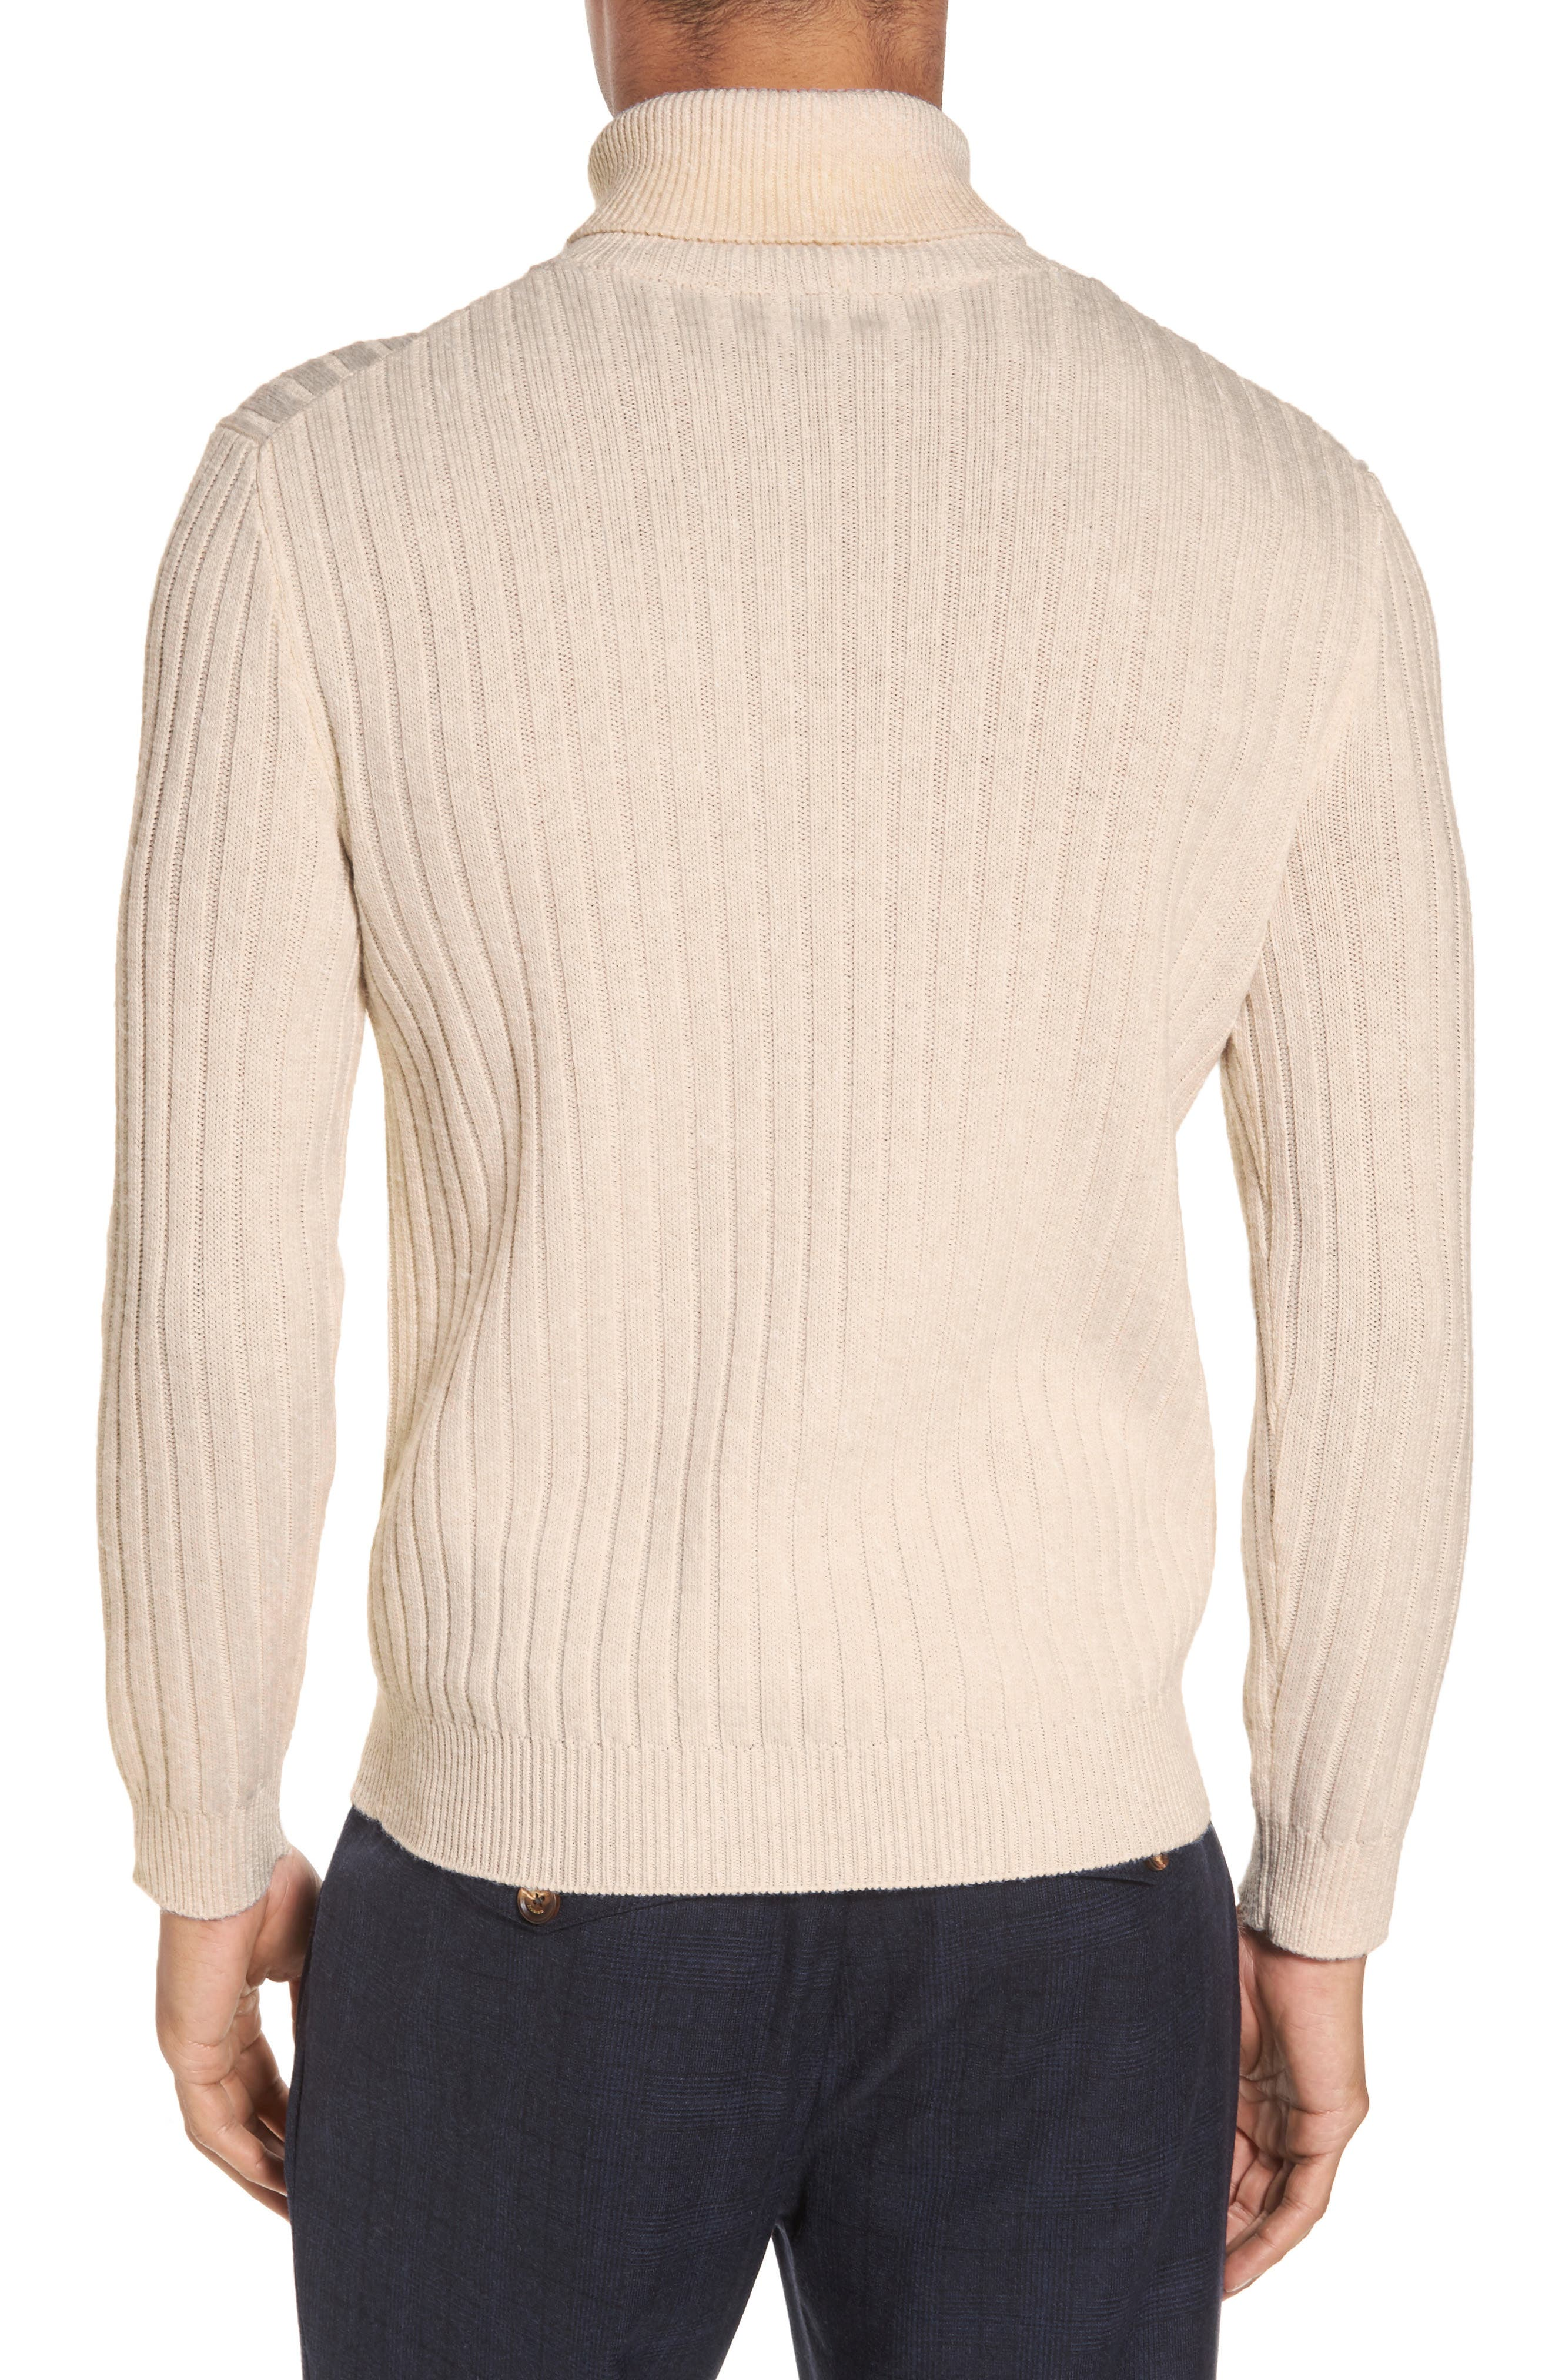 Ribbed Turtleneck Wool Sweater,                             Alternate thumbnail 2, color,                             250